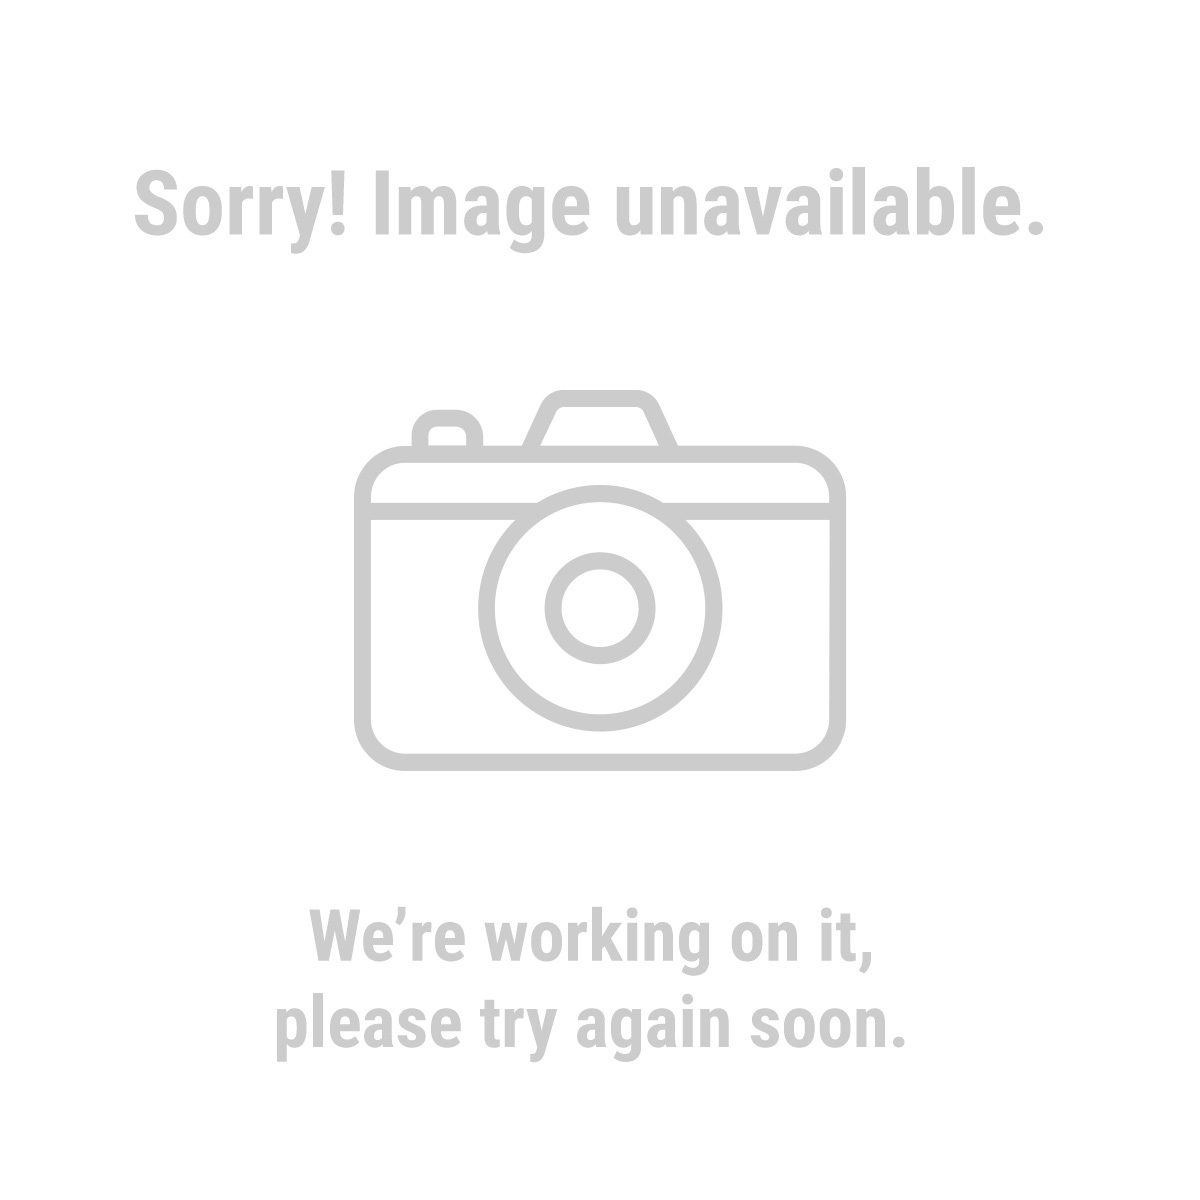 Pittsburgh Automotive 46900 Suction Cup with Quick Release